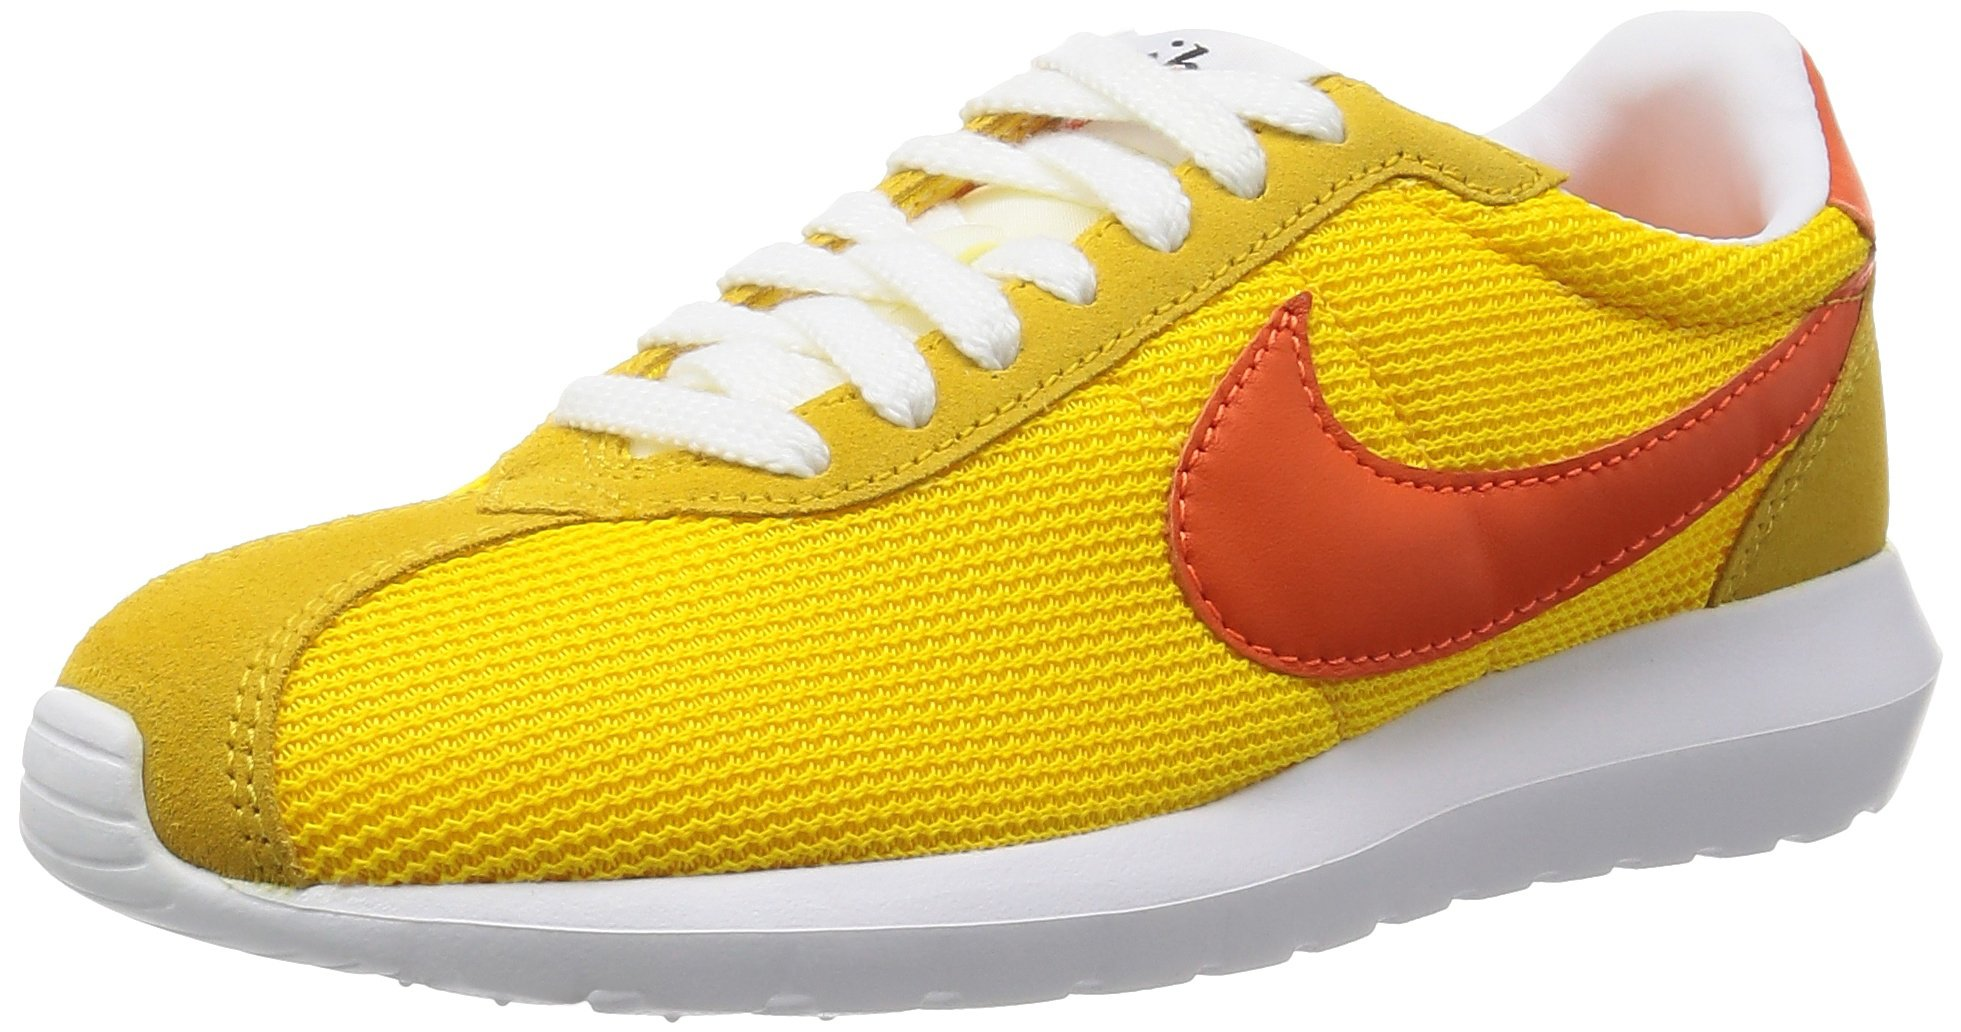 on sale ac51a 5faf4 Galleon - NIKE Roshe LD-1000 QS Mens Trainers 802022 Sneakers Shoes (US  10.5, Varsity Maize Safety Orange 781)